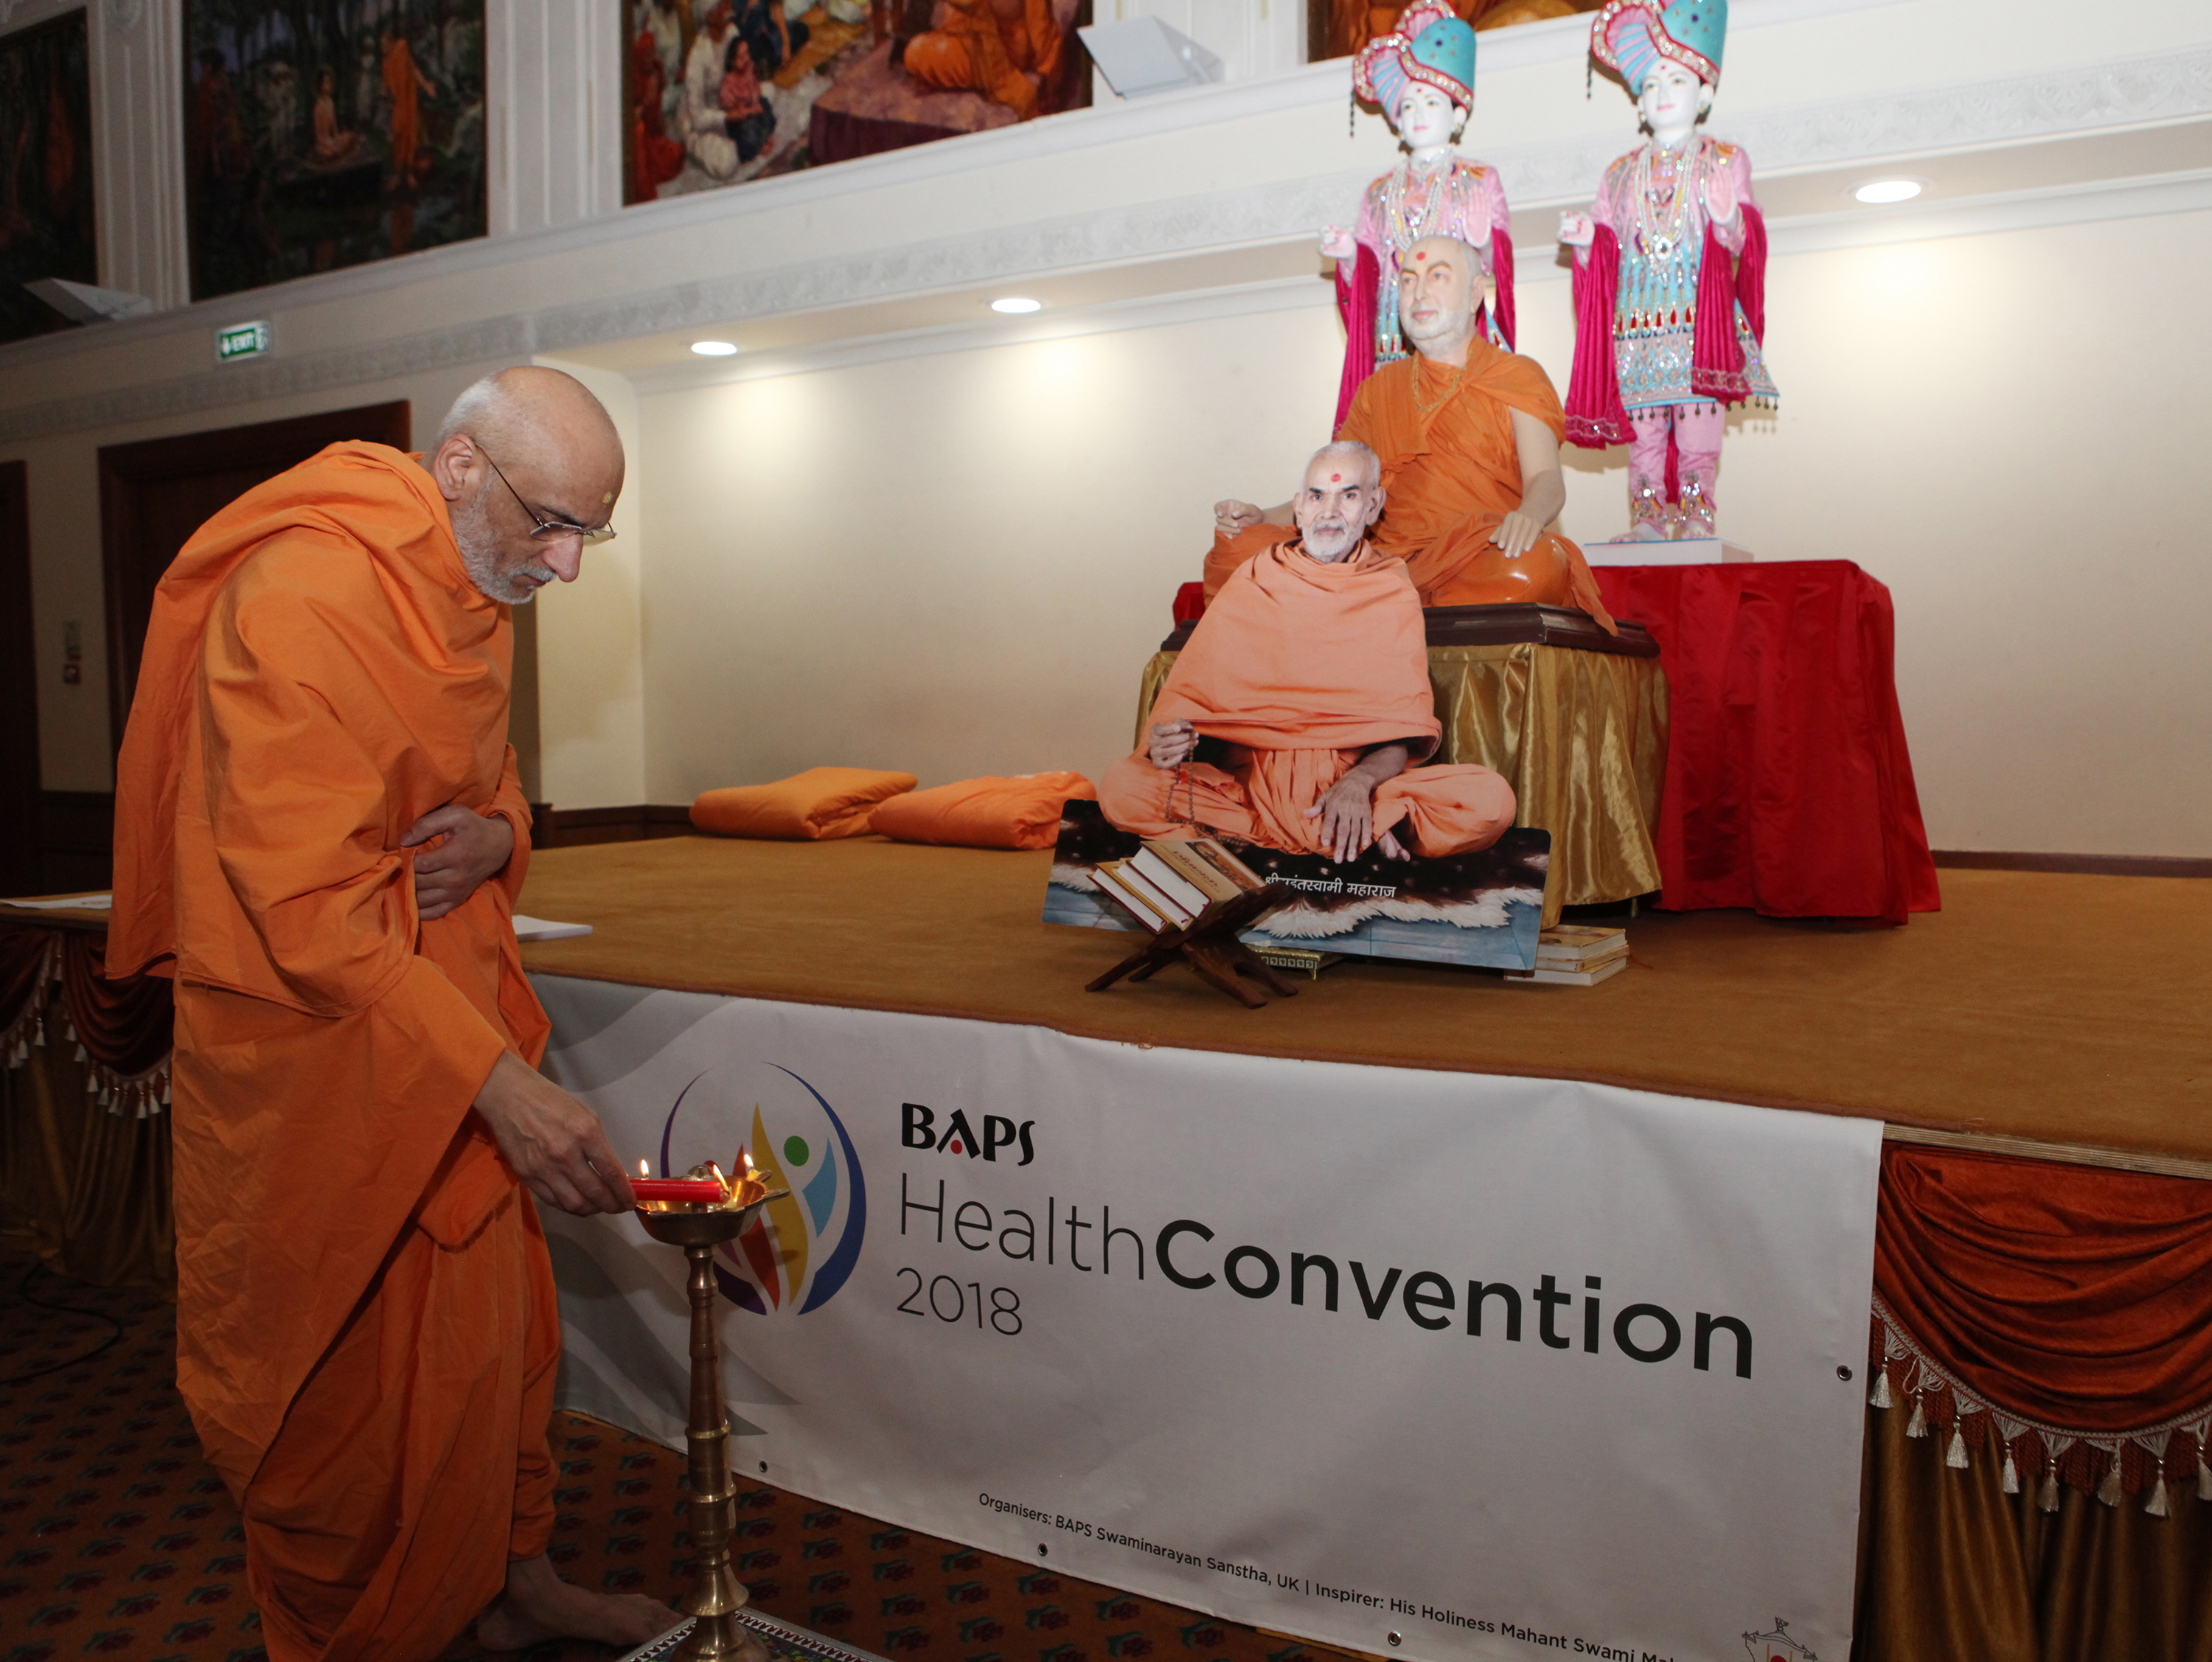 SMHealthConvention_London_180414 (3)